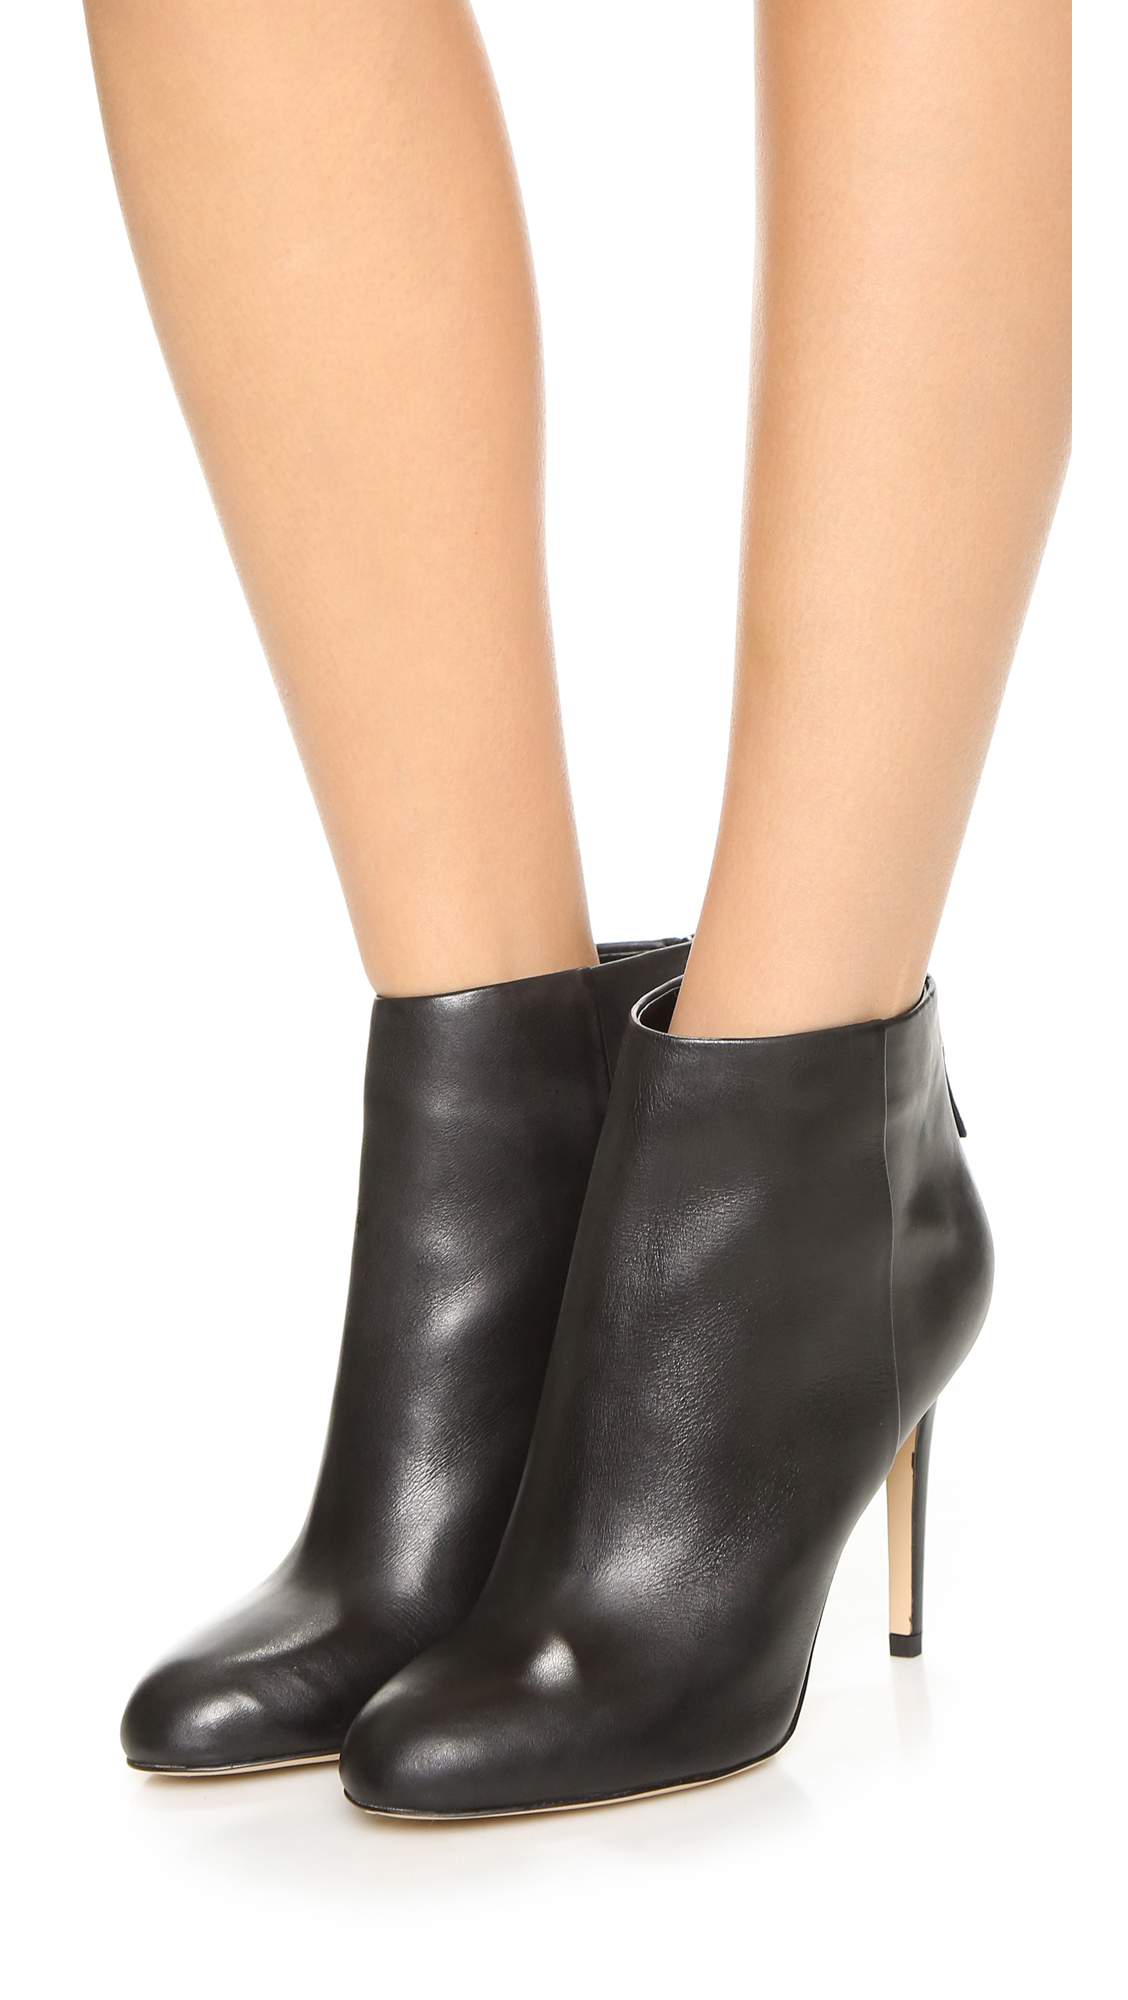 3483e3b55dce3 Sam Edelman Kourtney Booties